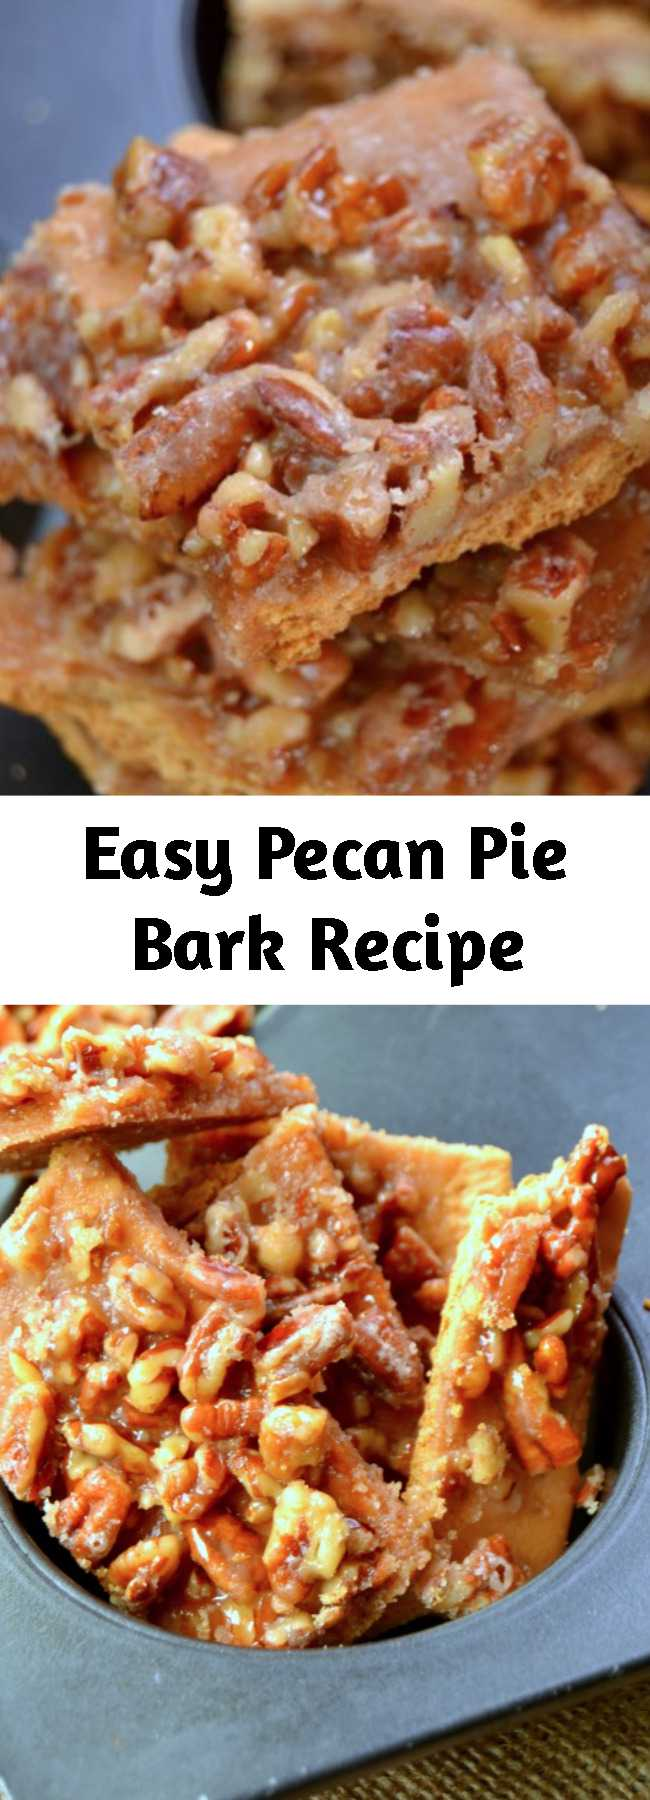 Easy Pecan Pie Bark Recipe - This Pecan Pie Bark is so incredibly good and it just can't get any easier to make. This is the perfect creative dessert recipe for the holidays. Make several batches because it disappears so fast!